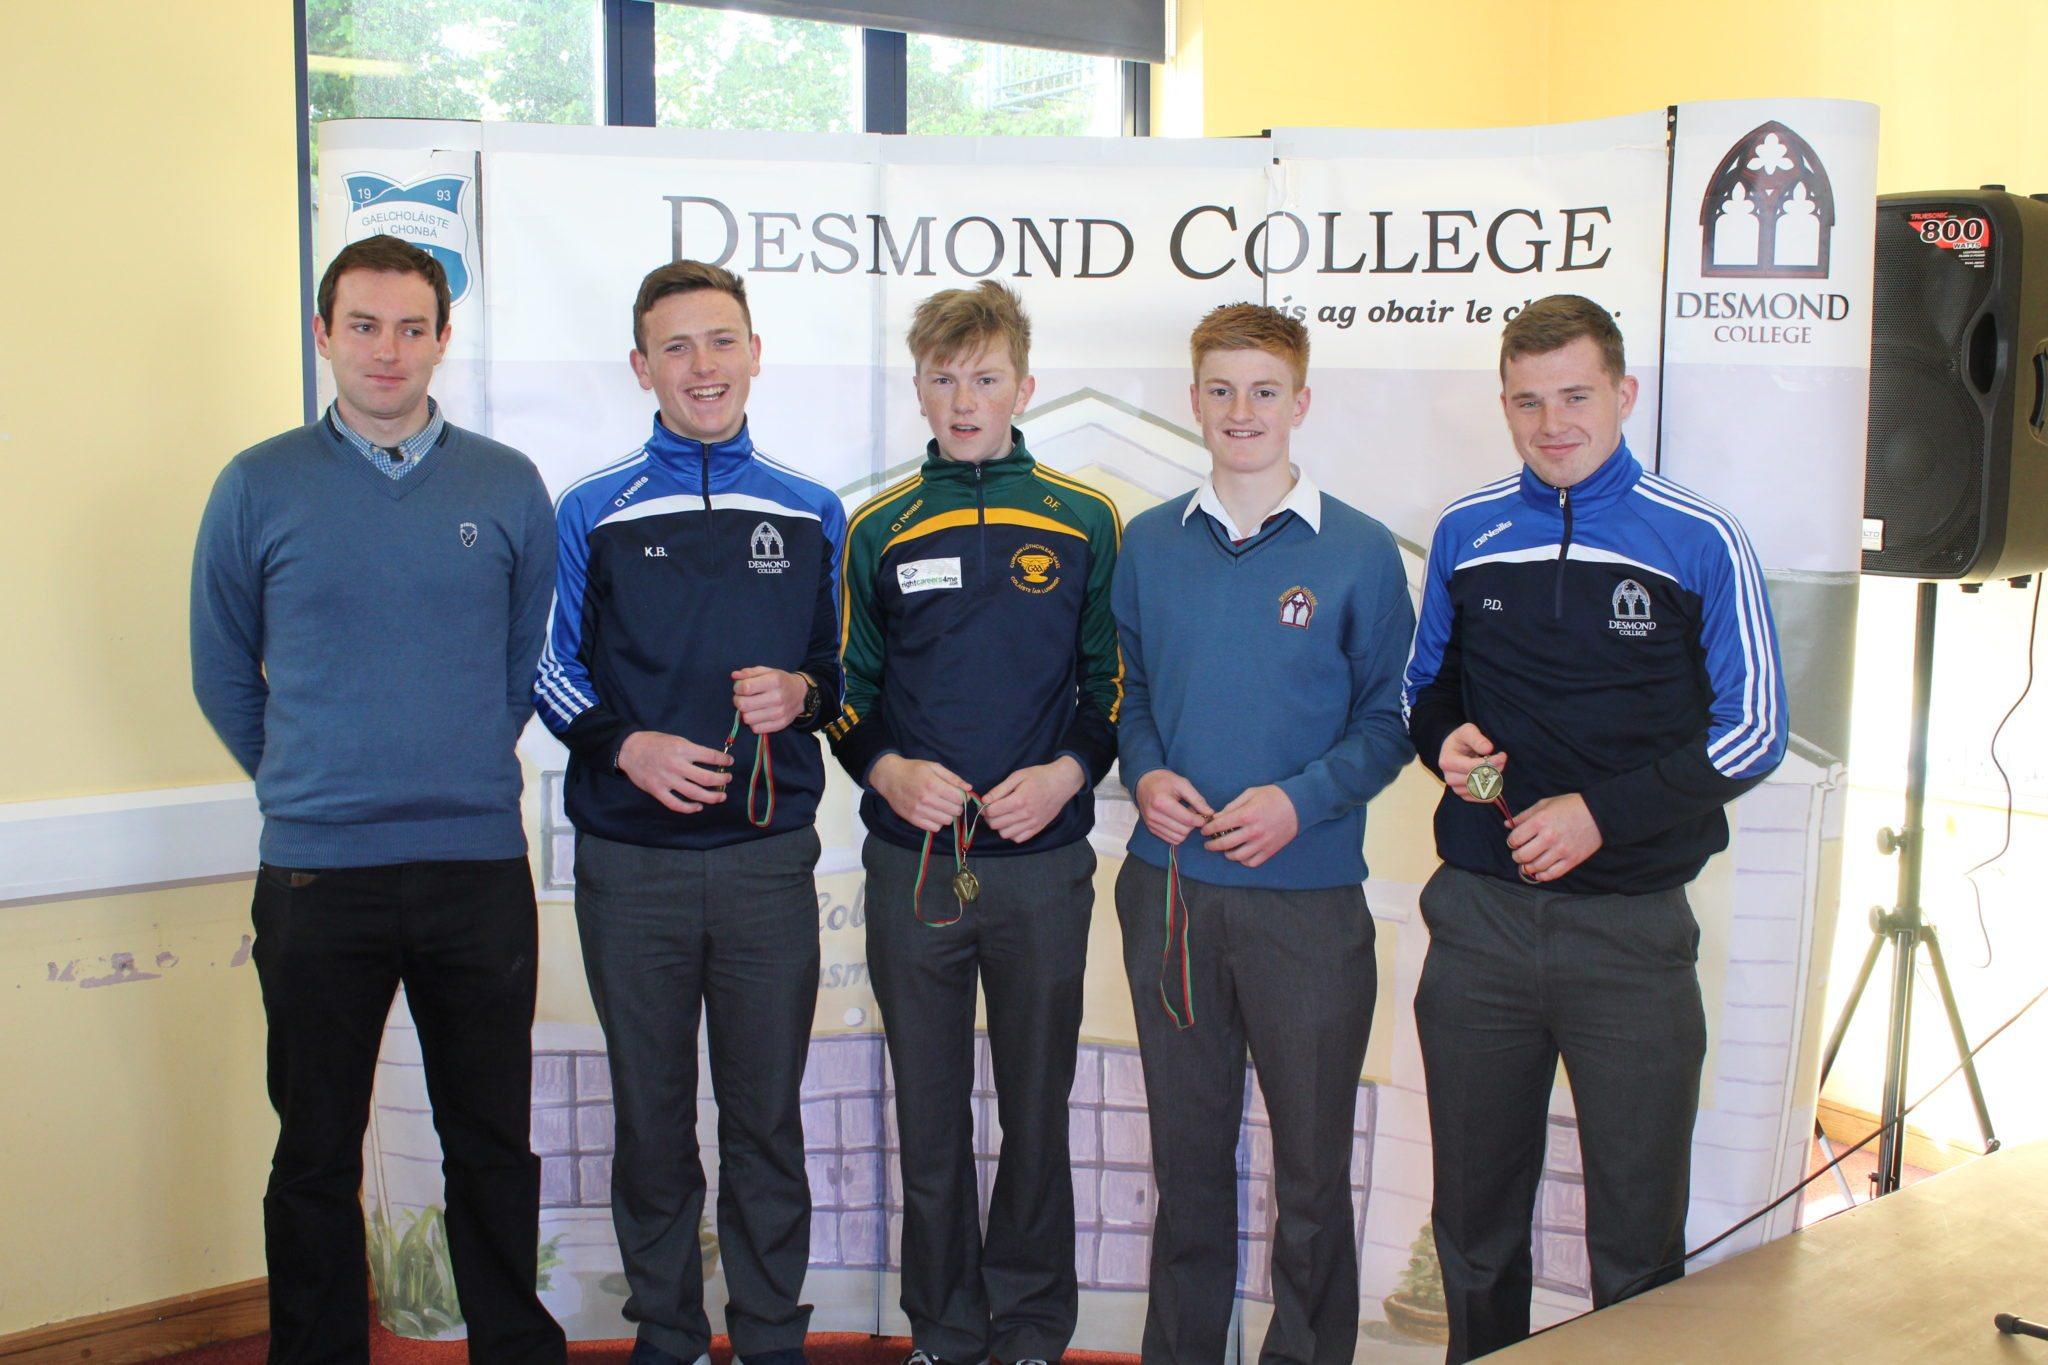 Desmond College Student Awards: May 2015: SPORTS AWARDS Fifth year : Mr Bourke with Cillian Brouder, Daniel Flynn, Miceal O'Flynn and Padraigh Dore